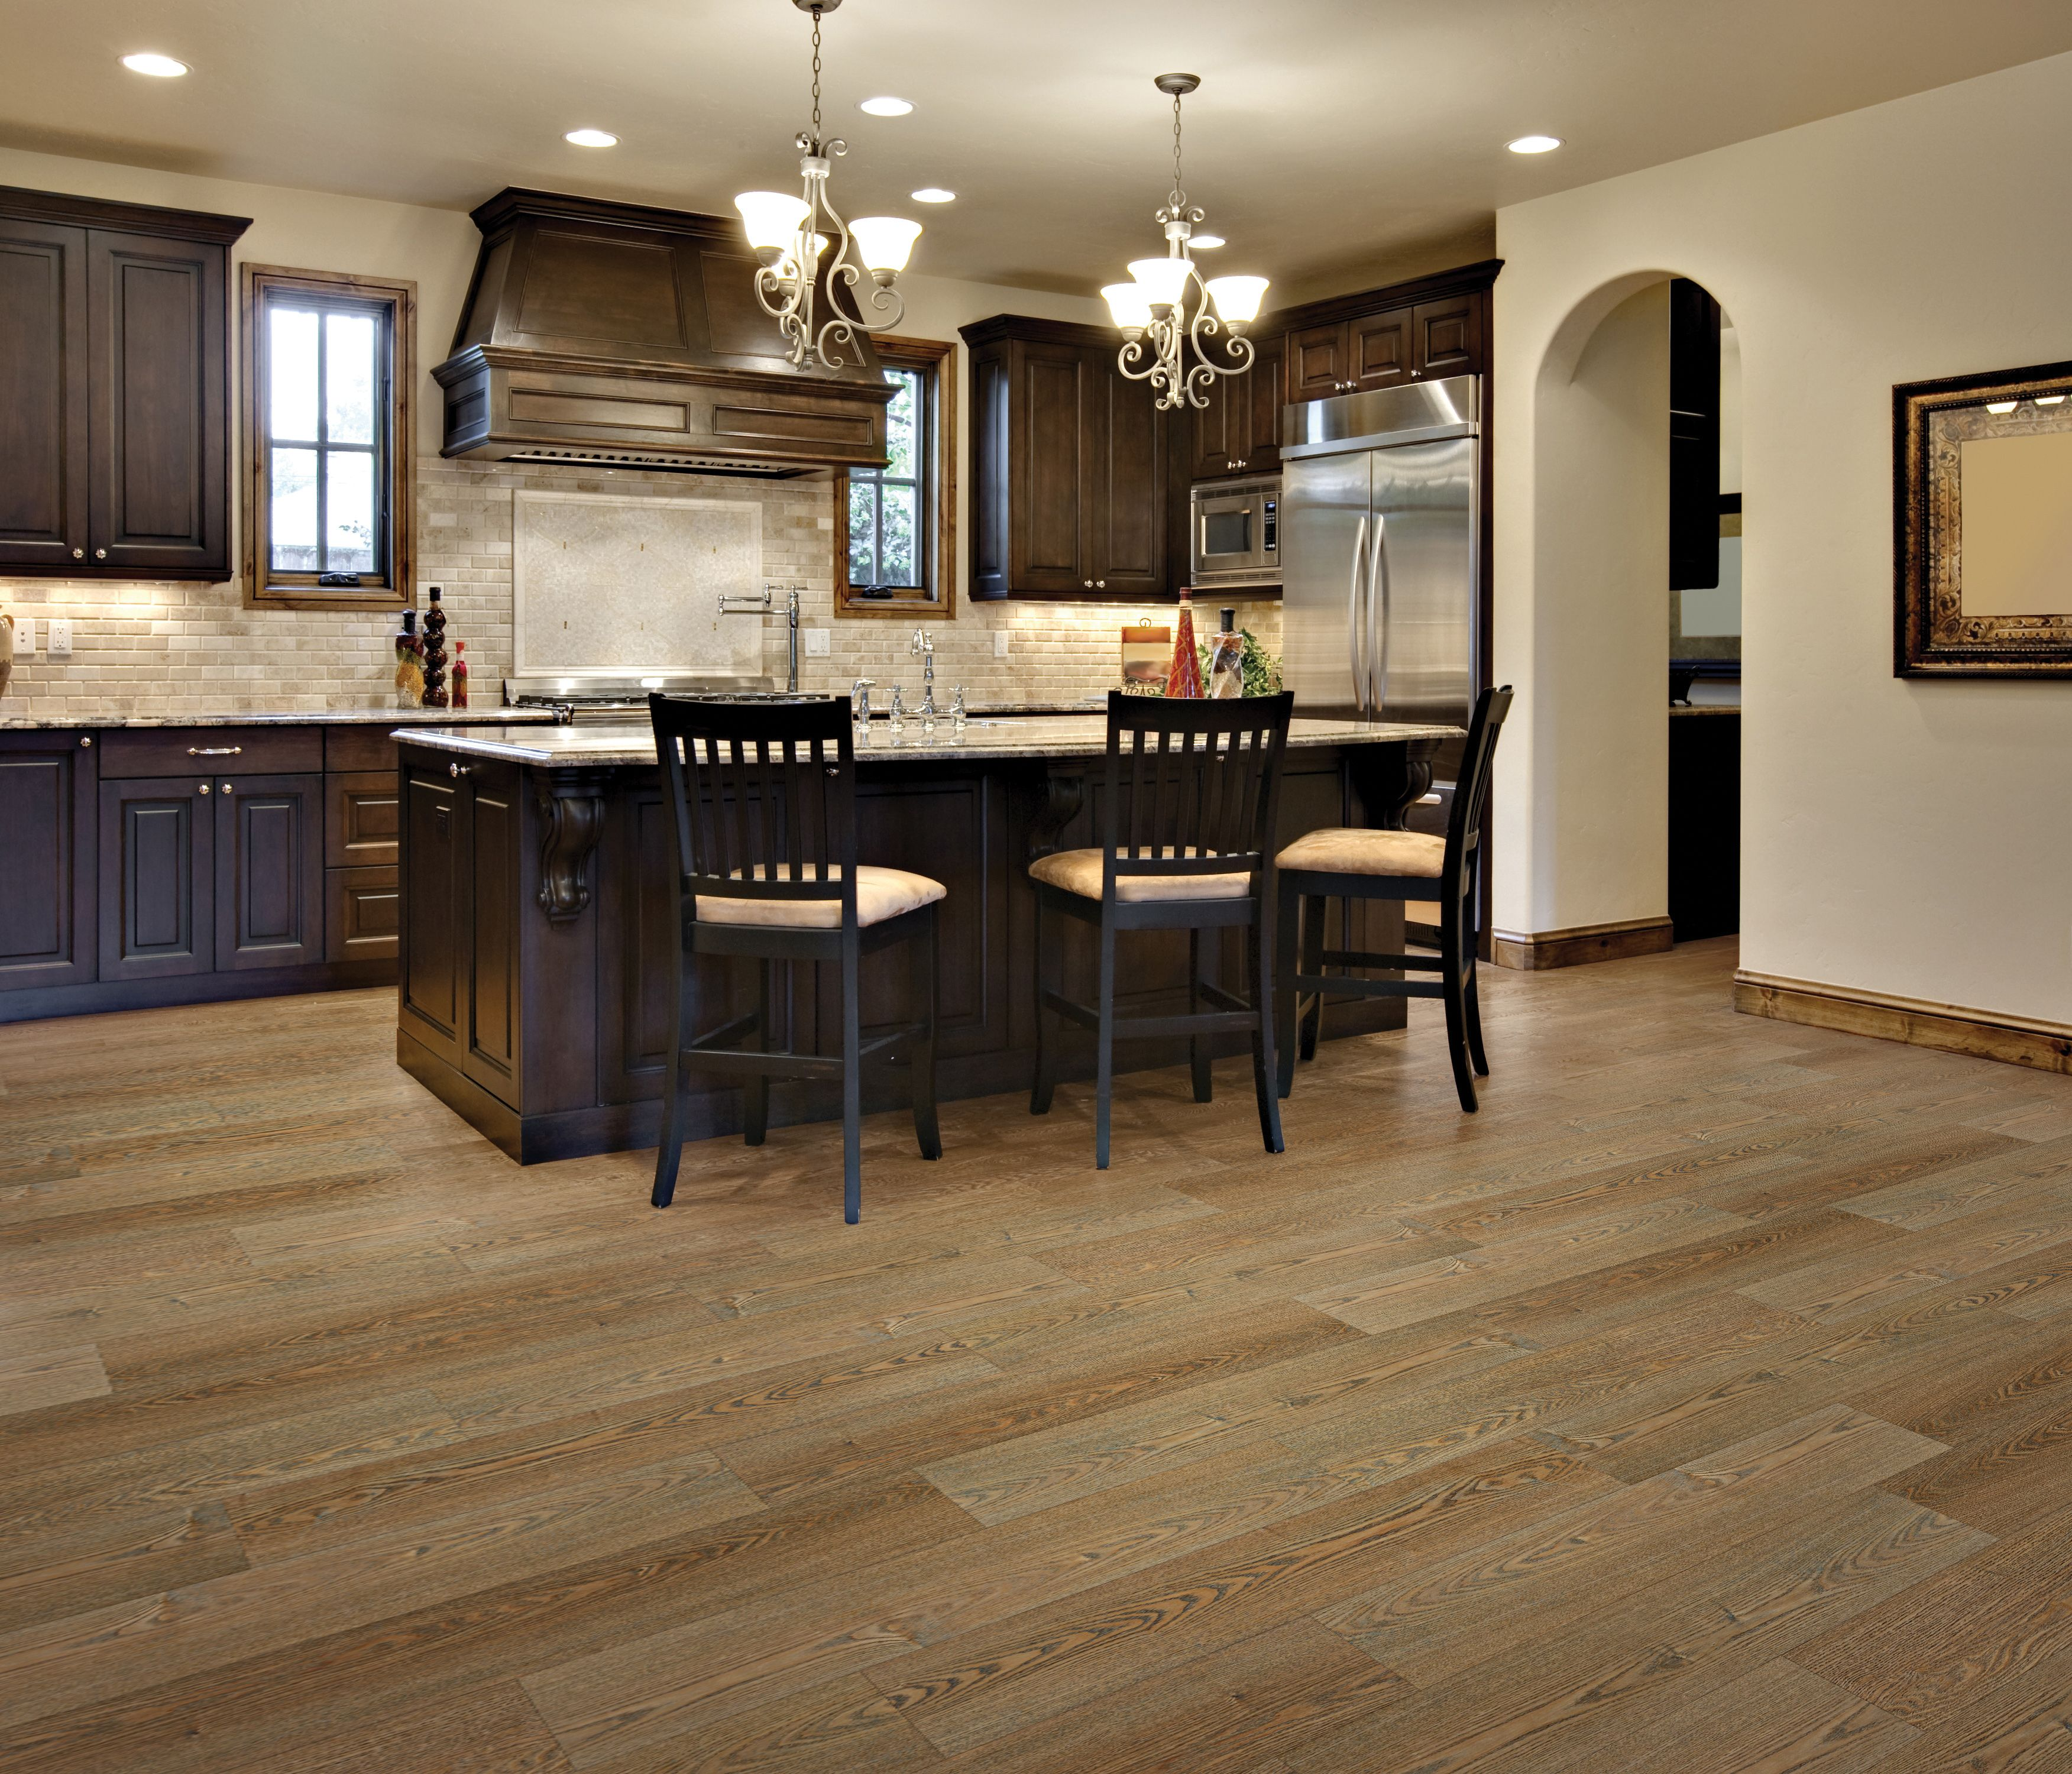 Stainmaster Pet Protect Luxury Vinyl Tile Lvt Lvp Plank Golden Oak Dark Brown Kitchen Cabinets Brown Kitchen Cabinets Dream Kitchens Design